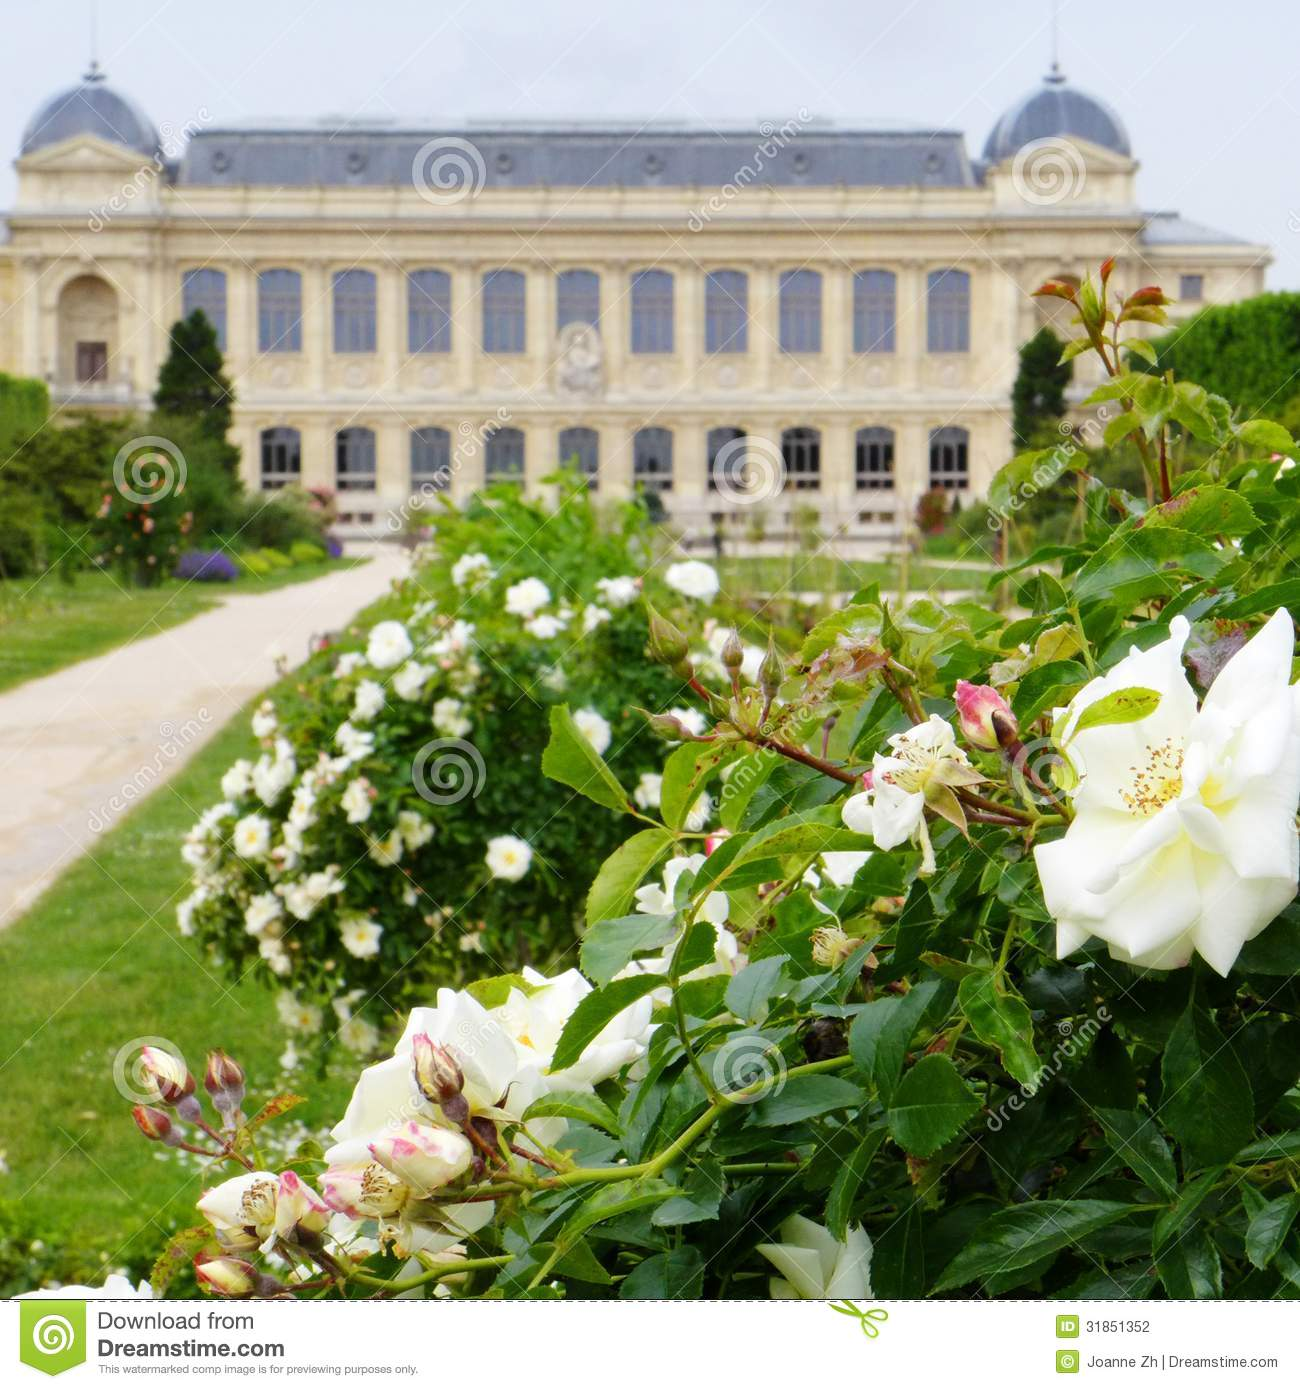 Jardin des plantes paris france stock photo image for Jardin ds plantes